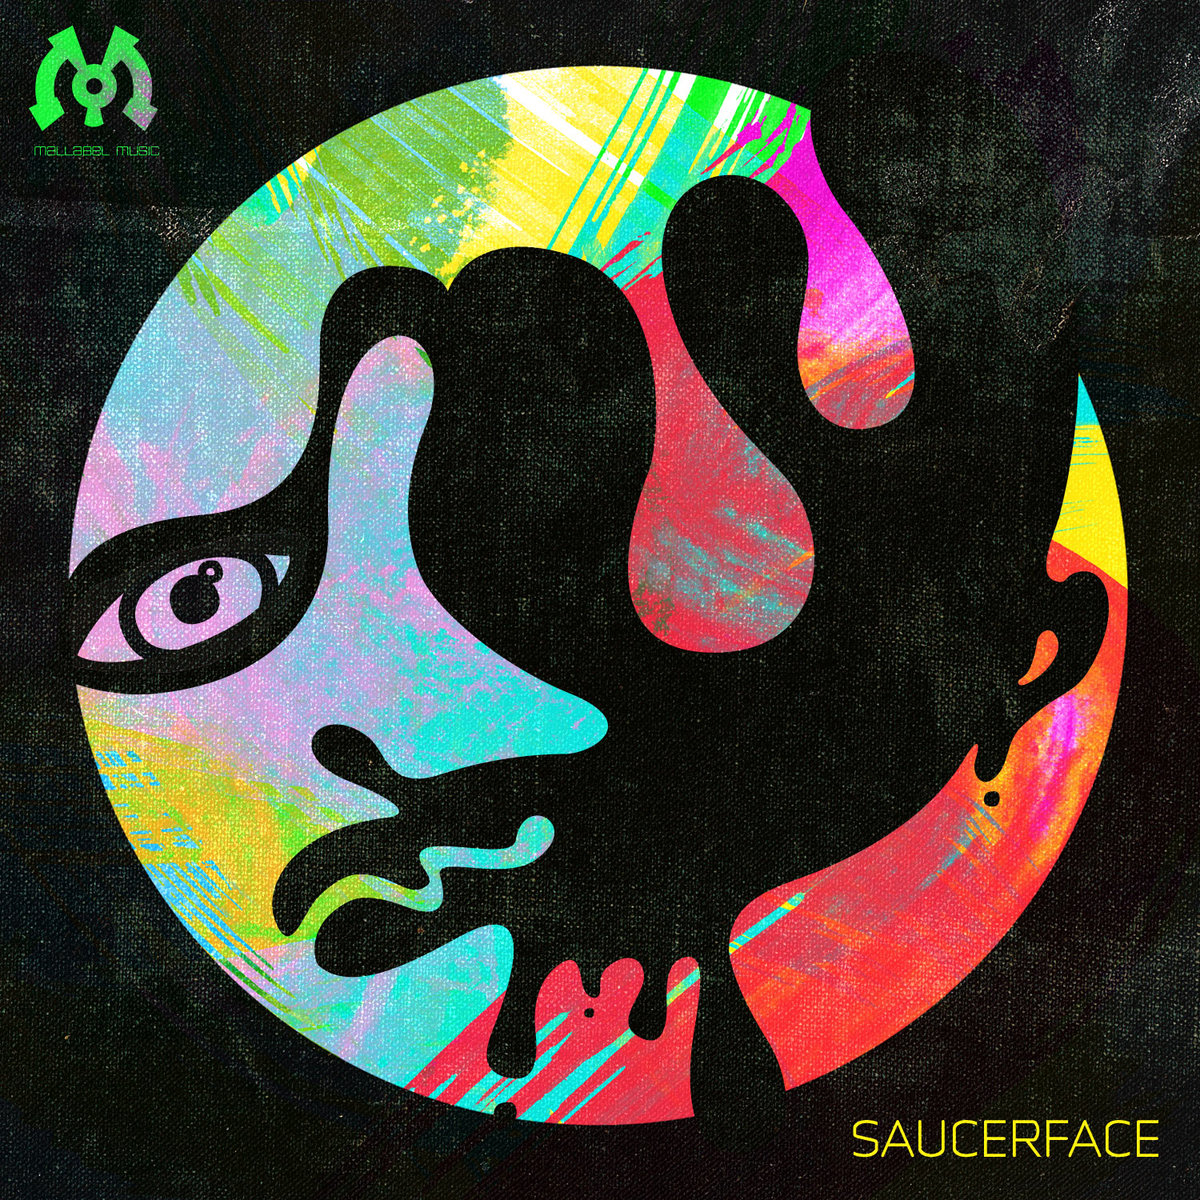 Fresh Young Minds - Paper Primate @ 'Various Artists - Saucerface' album (electronic, dubstep)